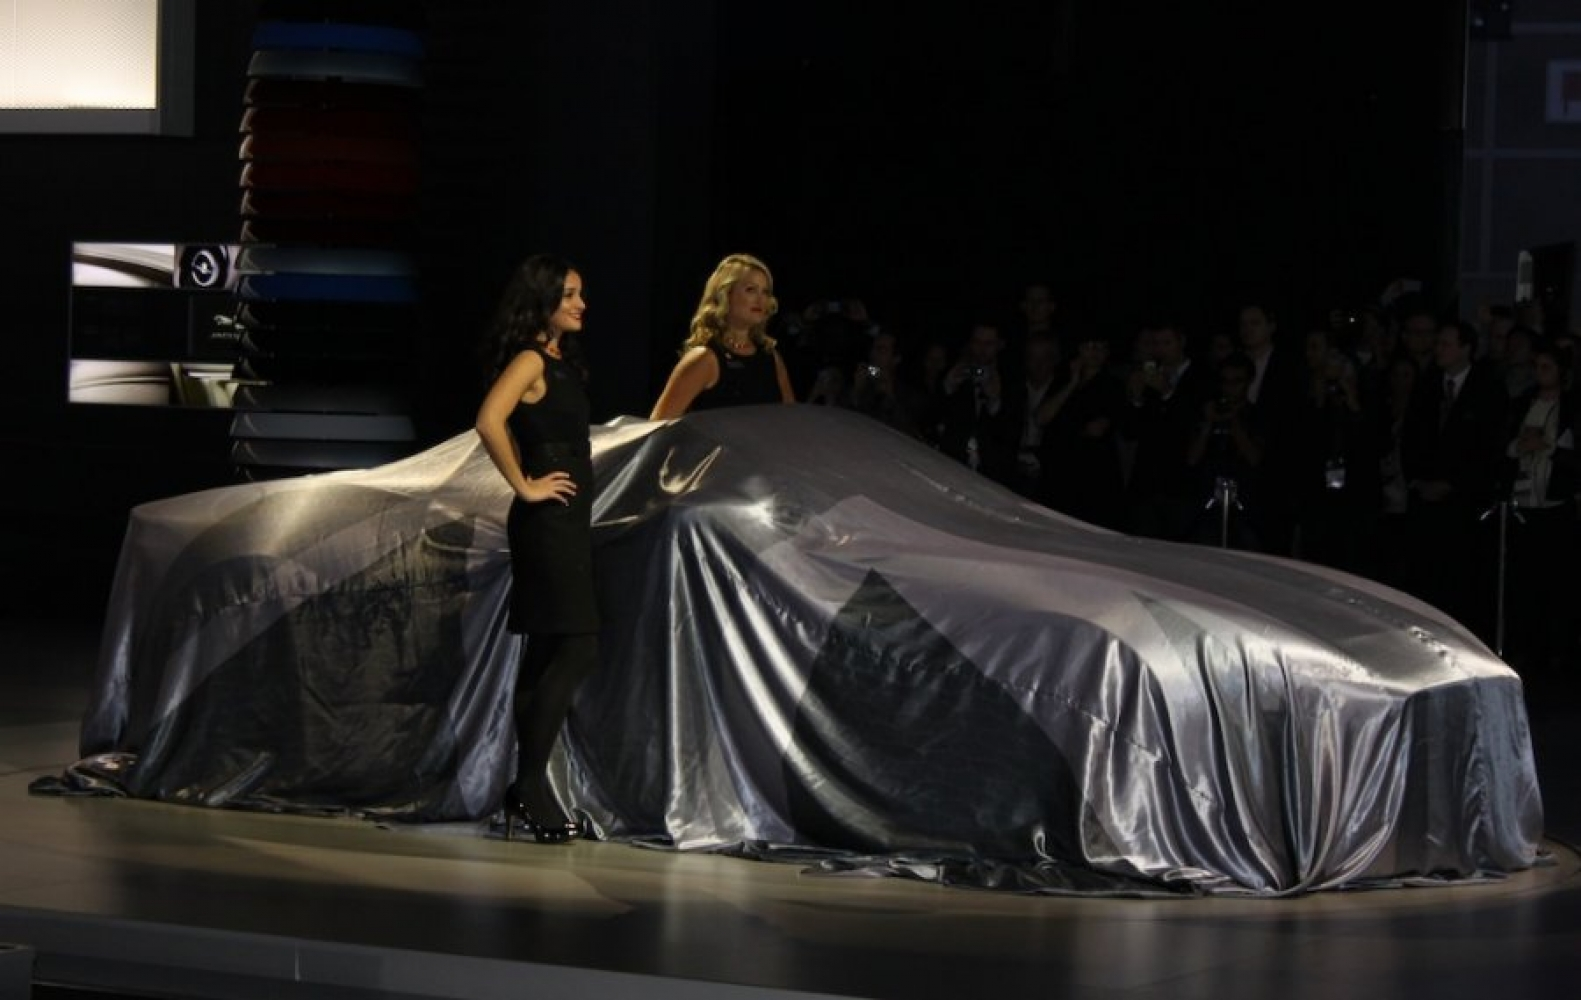 Reveal Car Covers Classic Additions Ltd - Show car cover